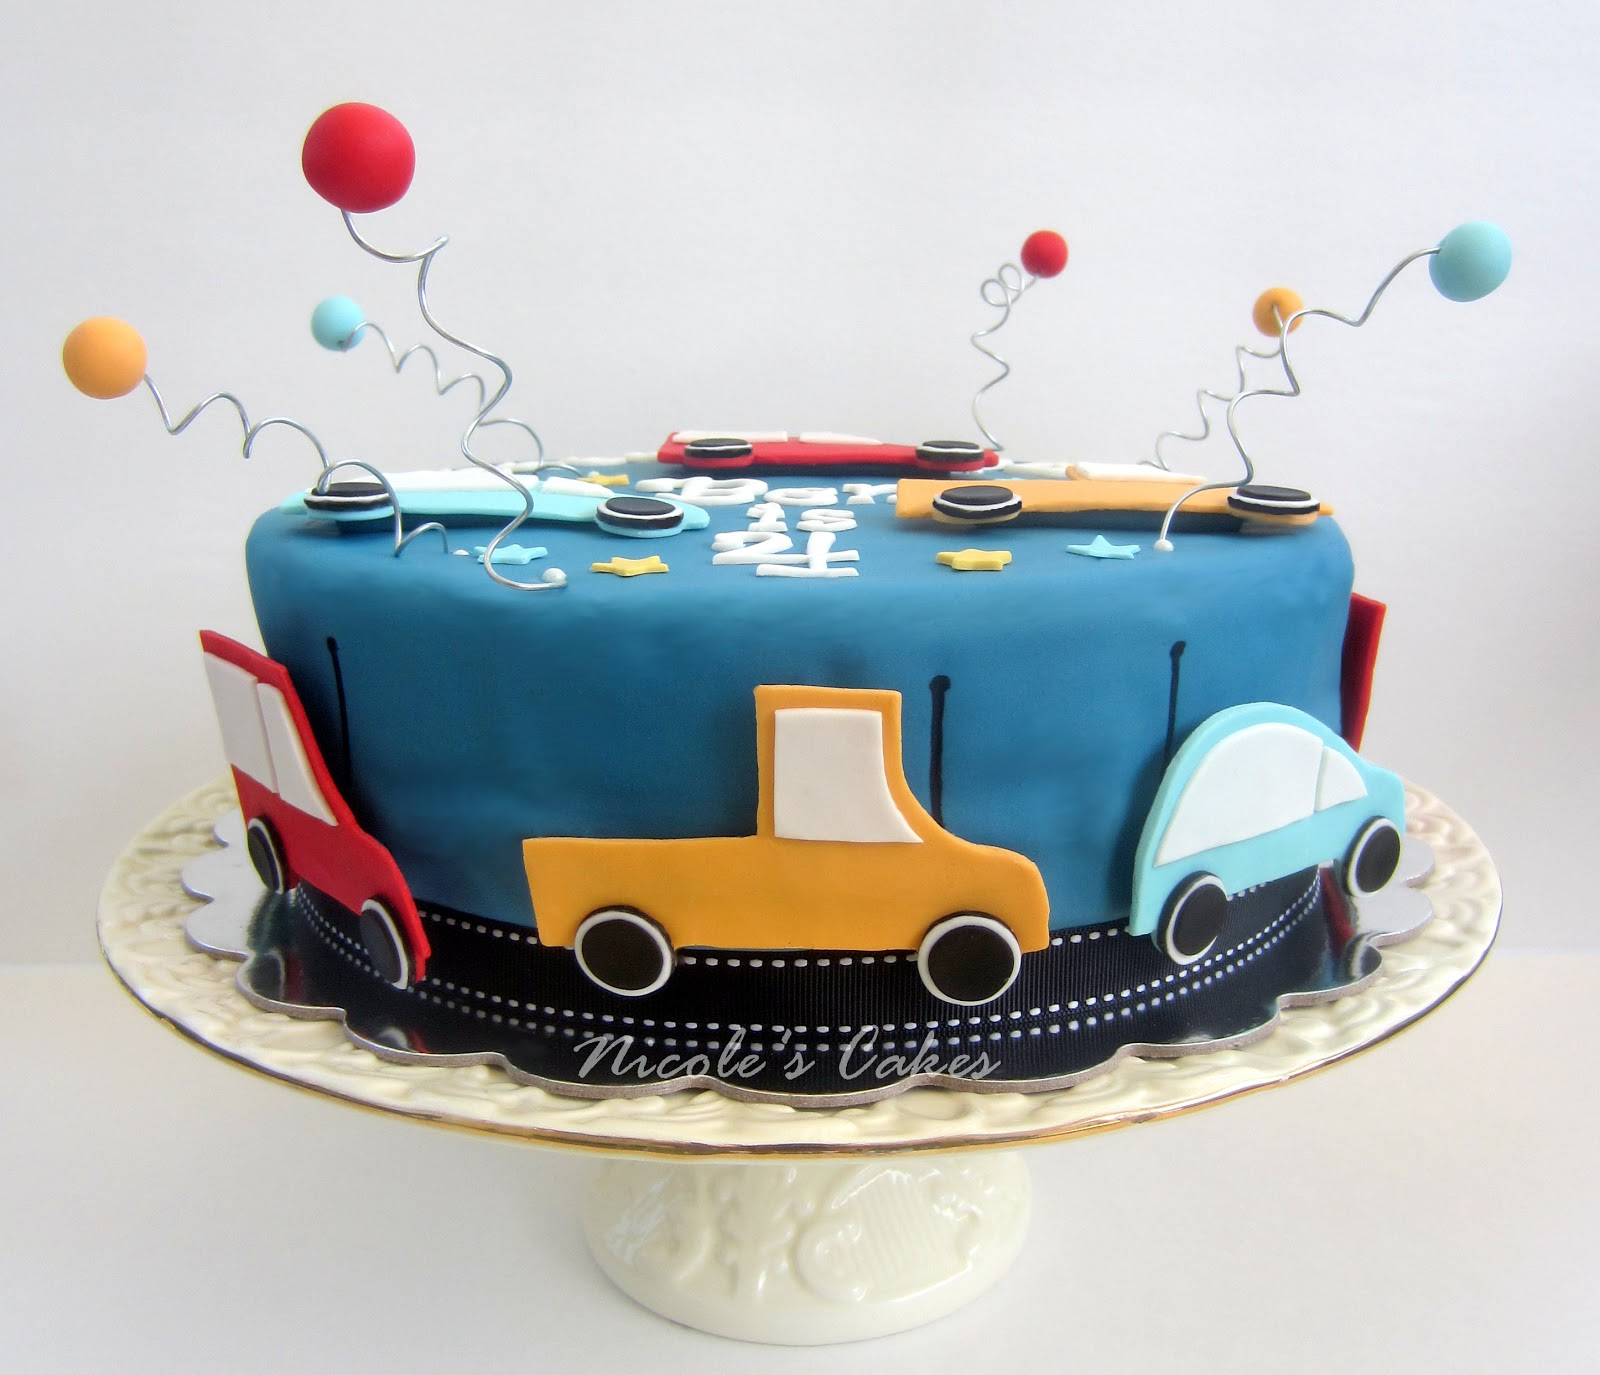 Birthday Cake Images With Car : Confections, Cakes & Creations!: Car themed birthday cake